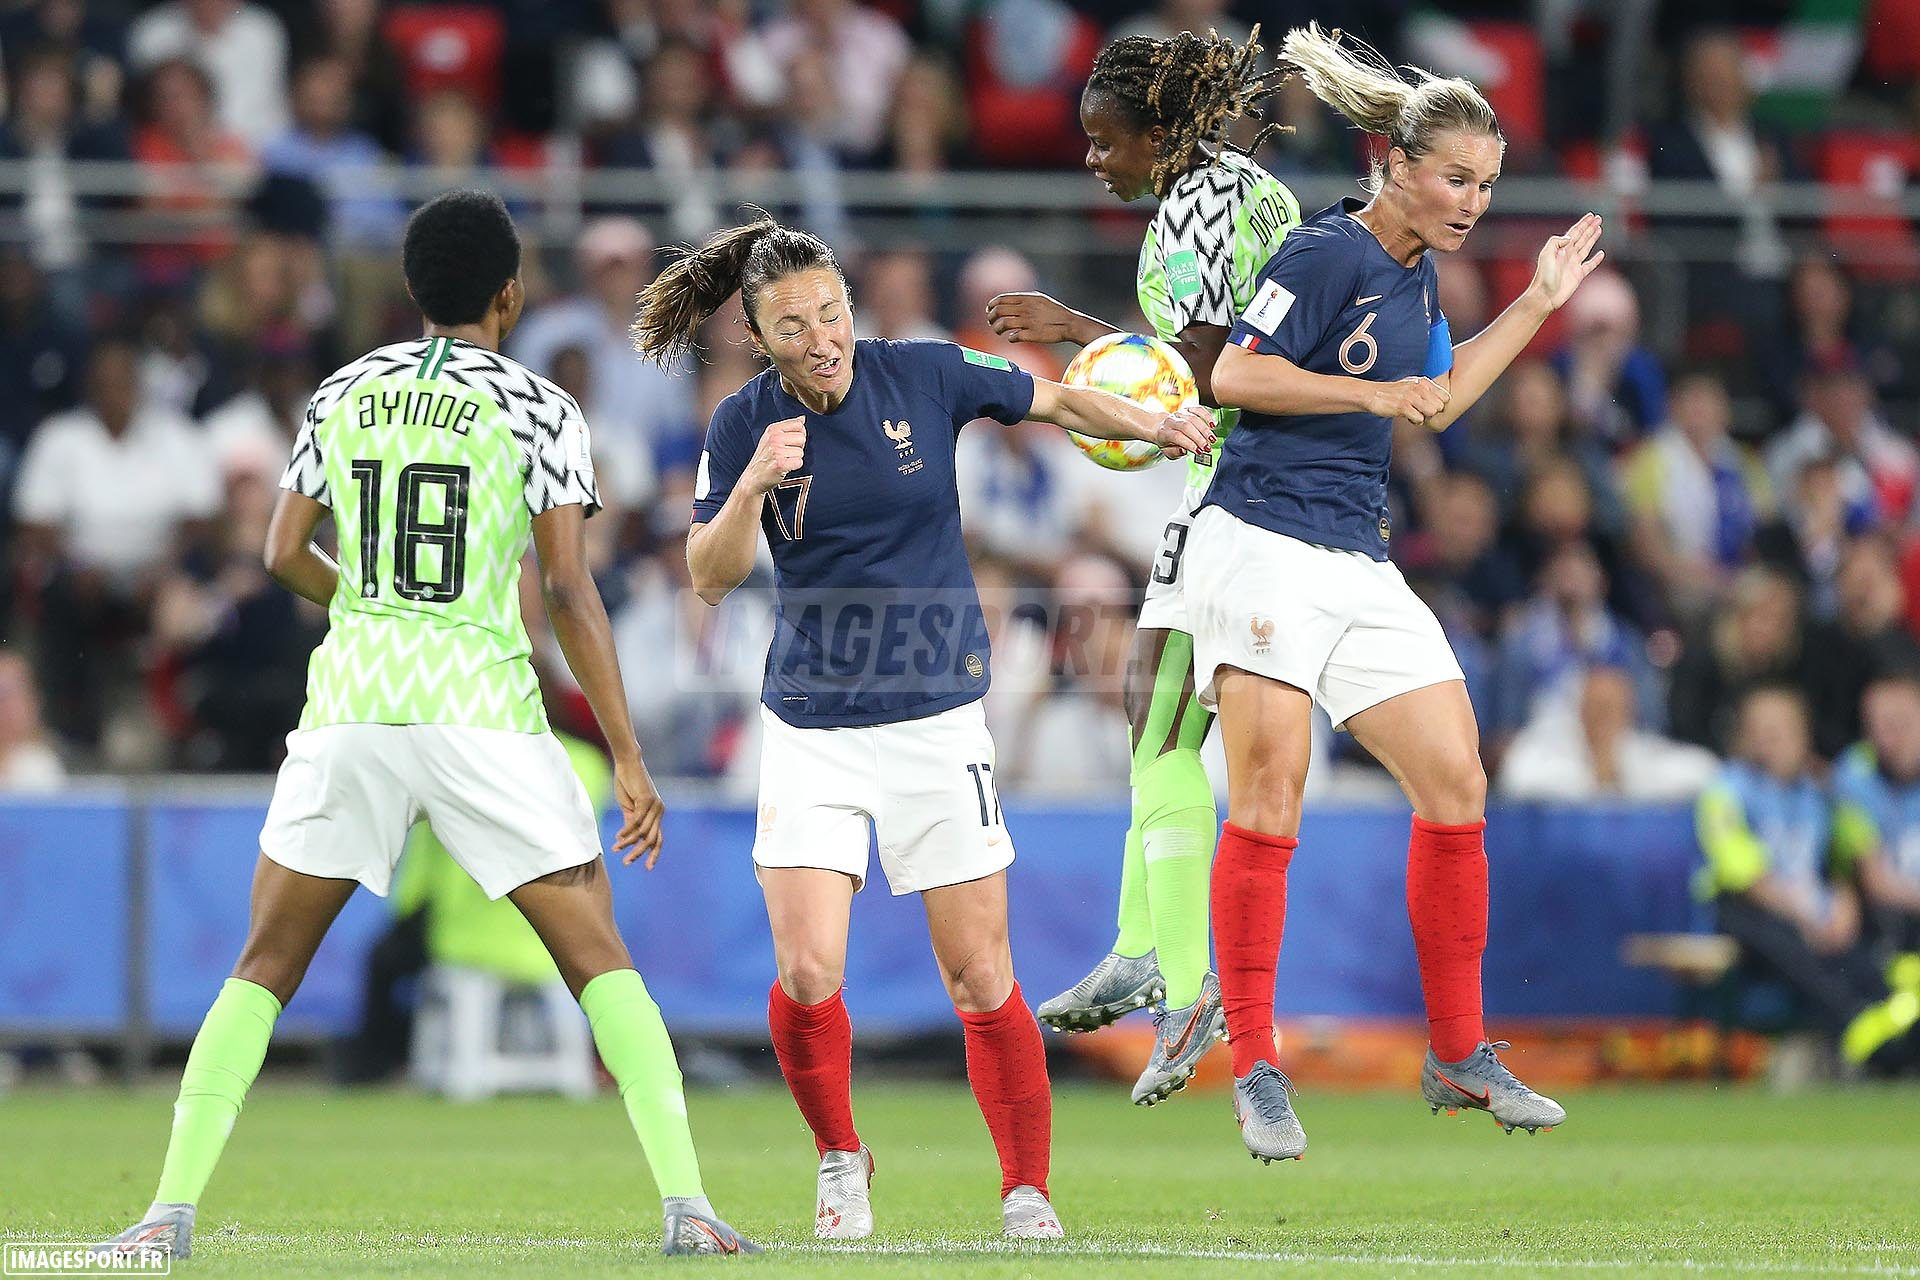 coupe-du-monde-19-nigeria-france_30